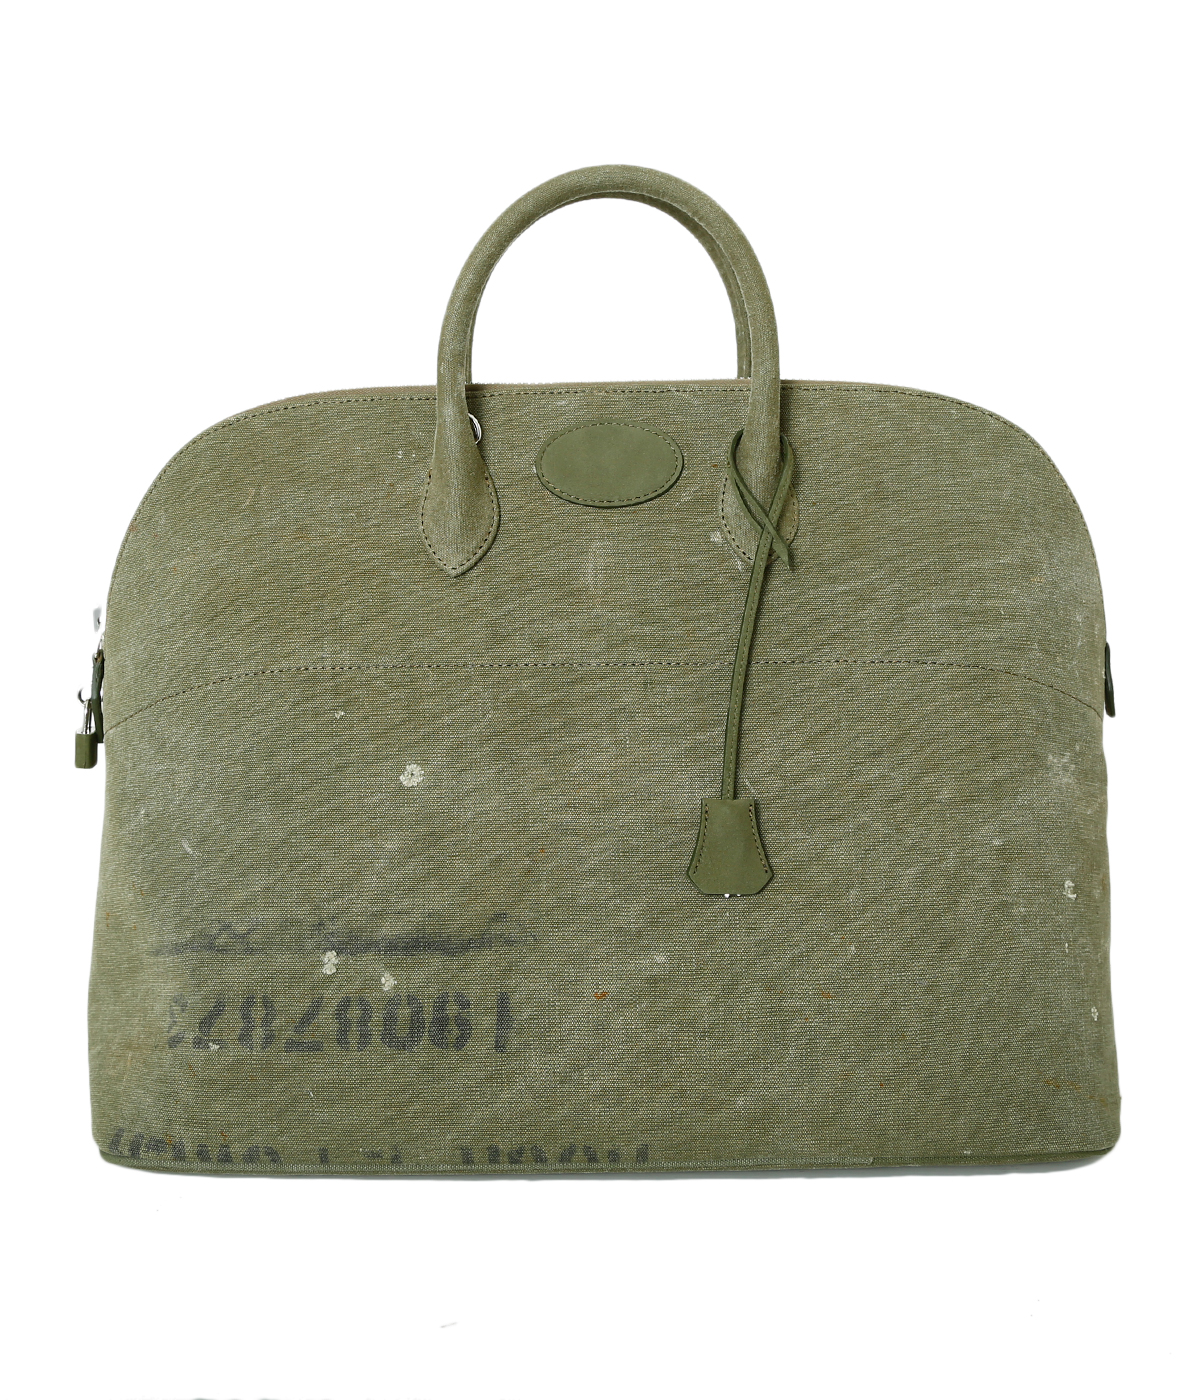 DAILYBAG (L) NO LOGO -Type B-